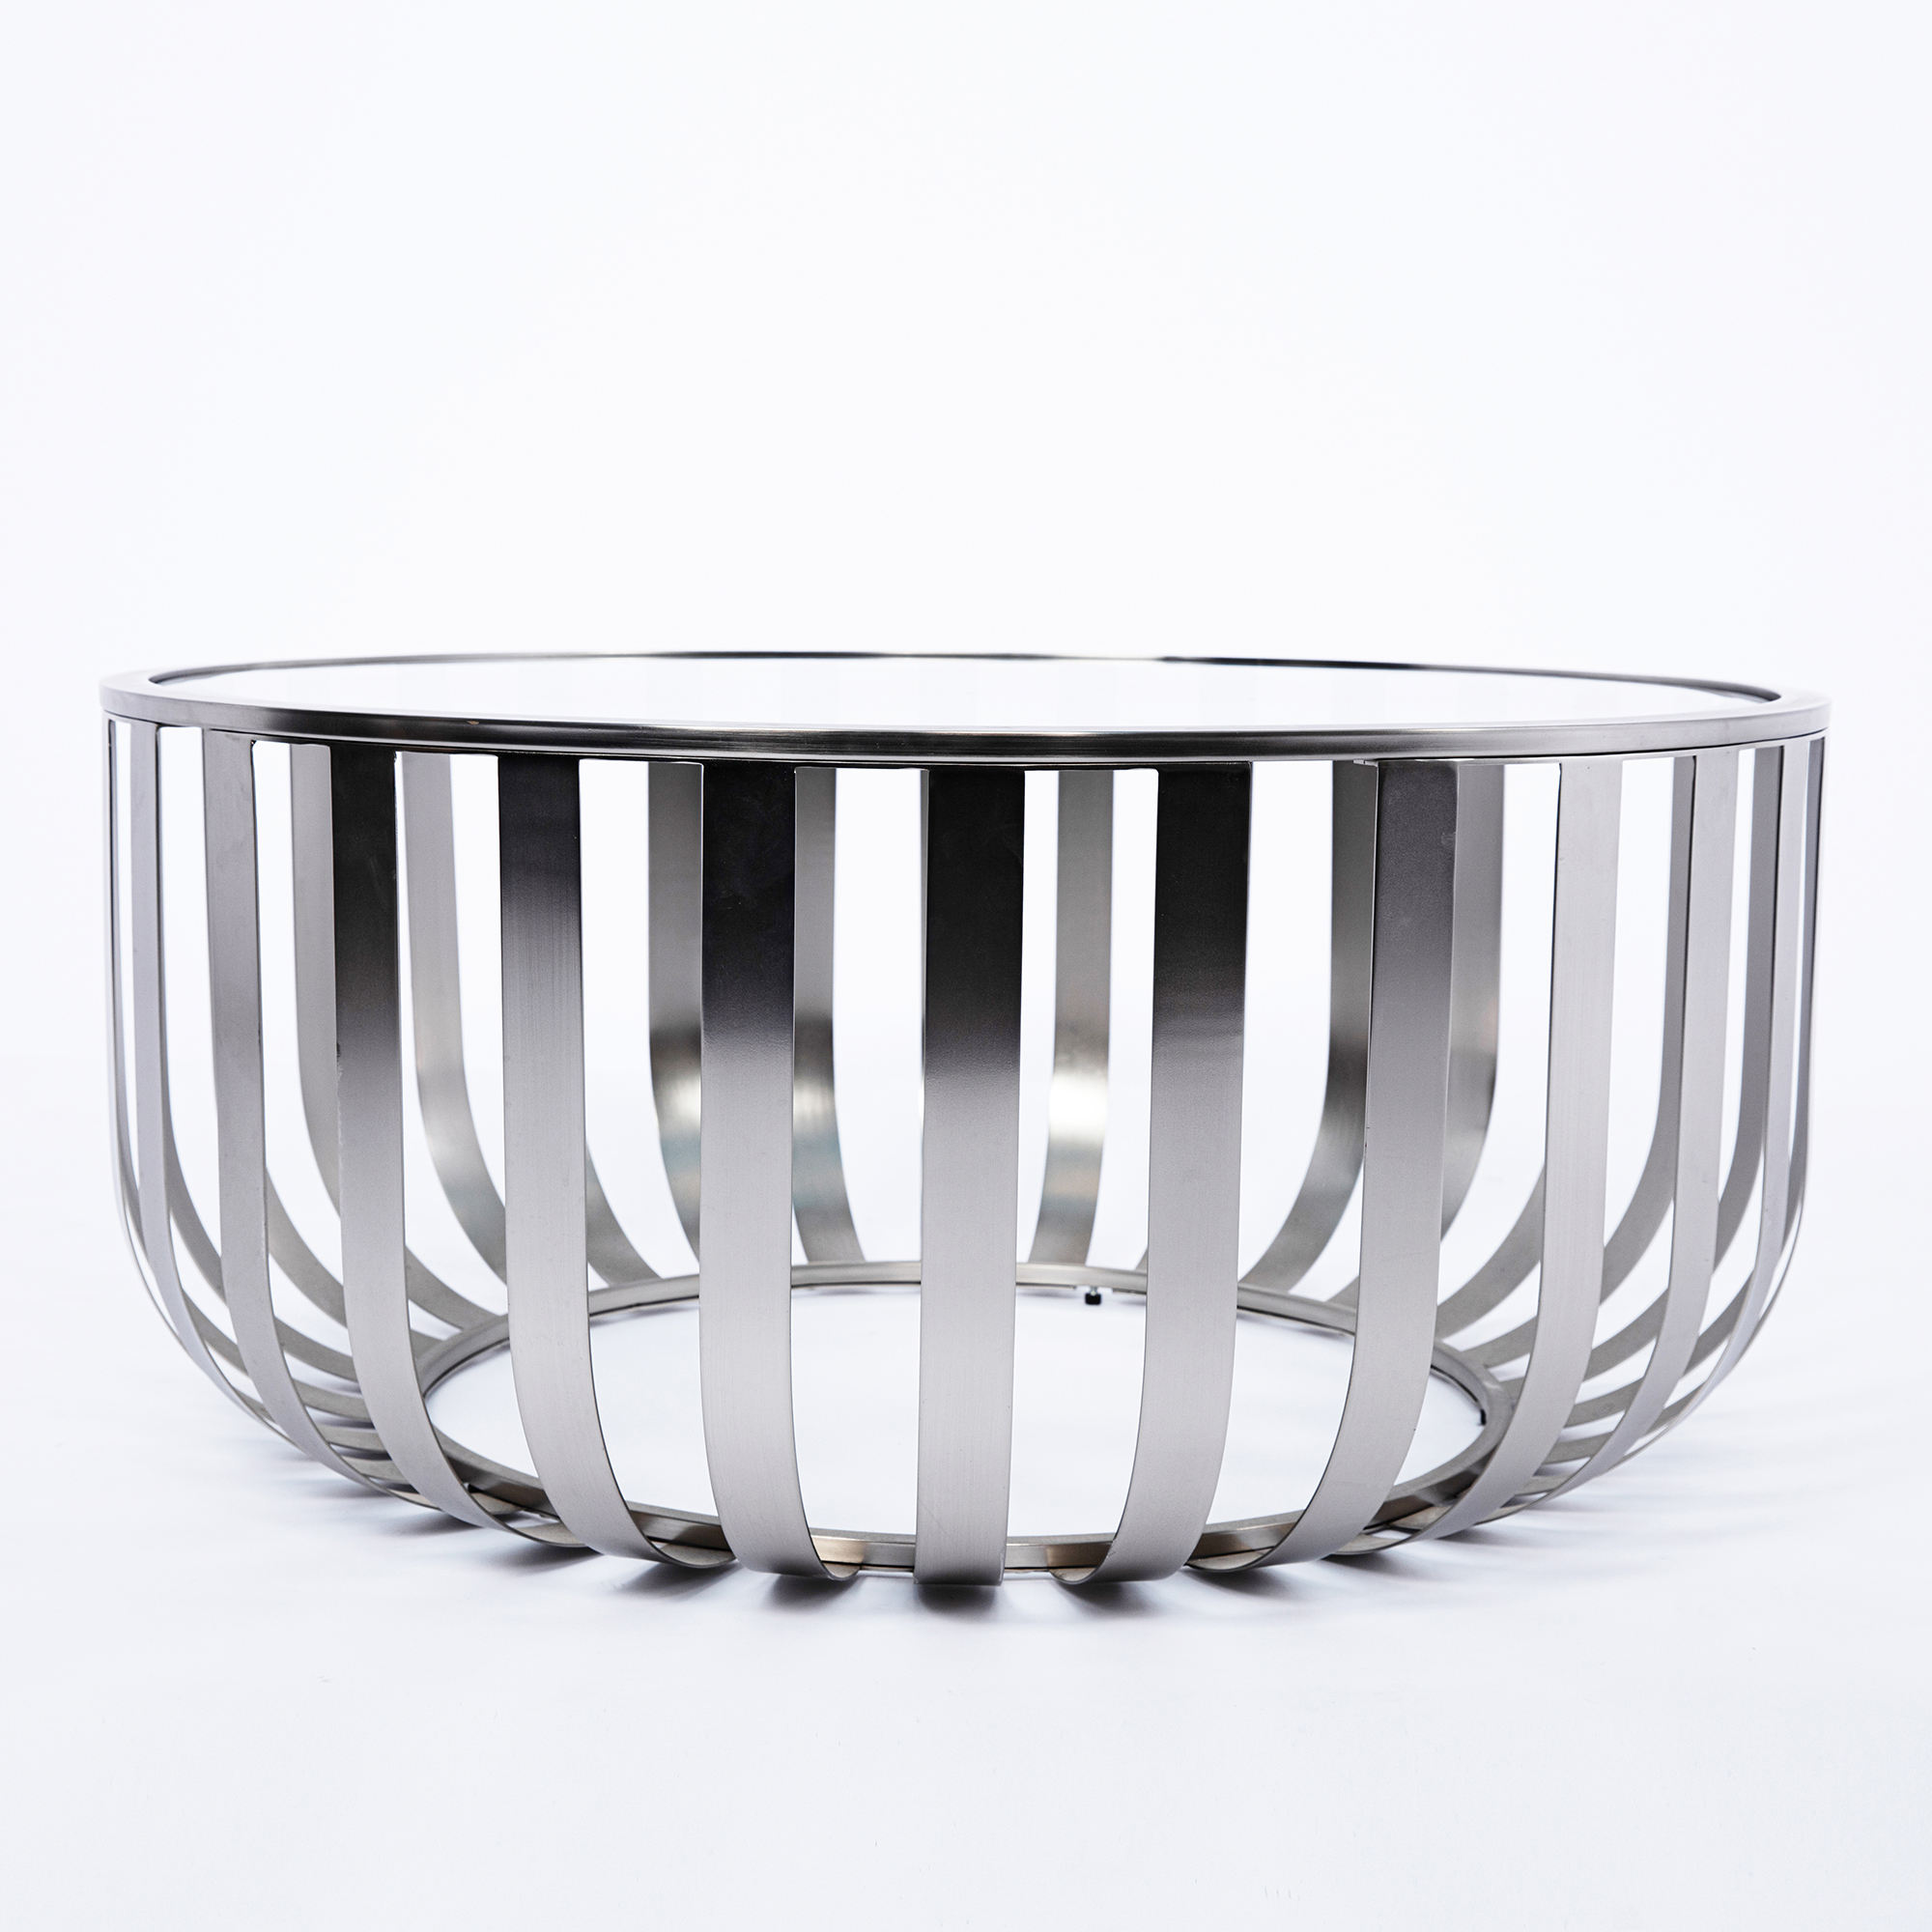 Modern Design 2 Piece Clear Tempered Glass Top Round Centre Coffee Table Set Stainless Steel Metal Furniture